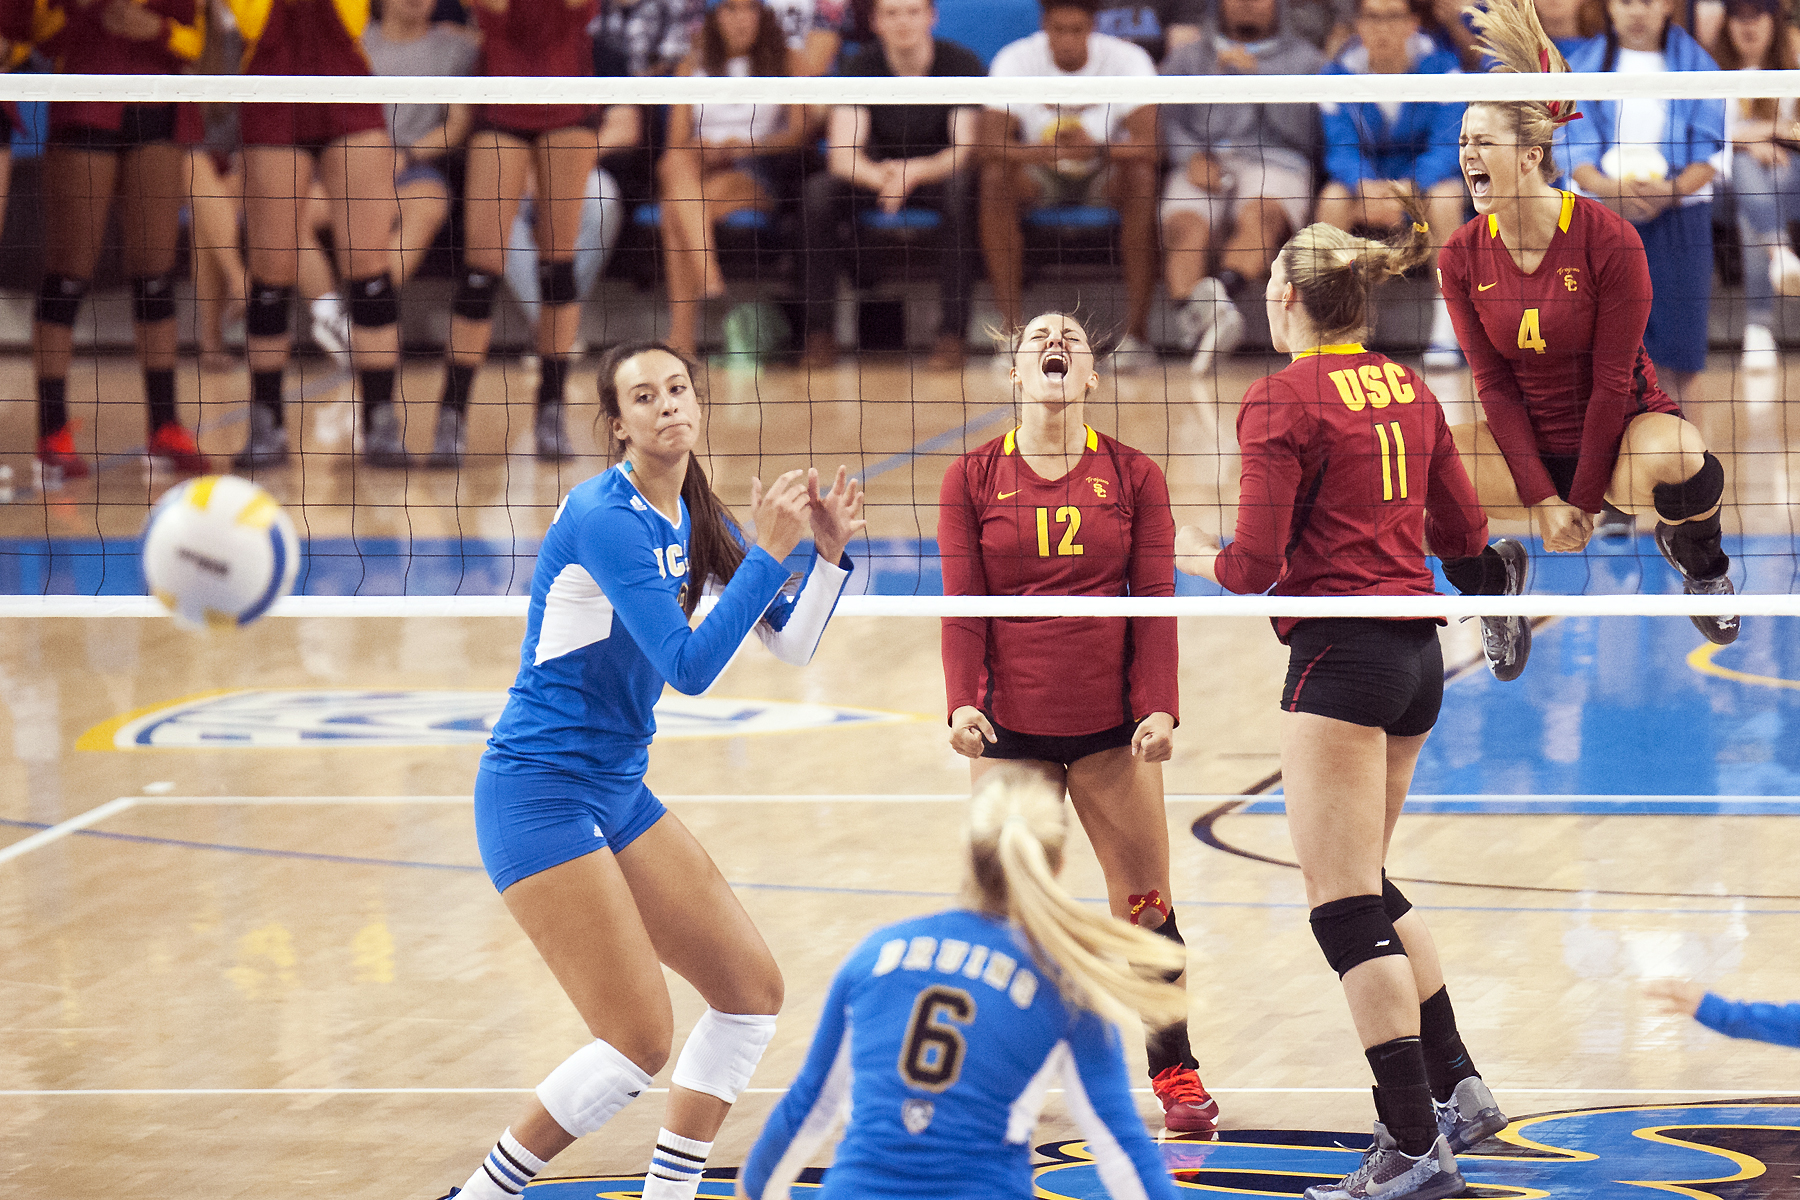 Usc 2015 The Year In Athletics Usc News